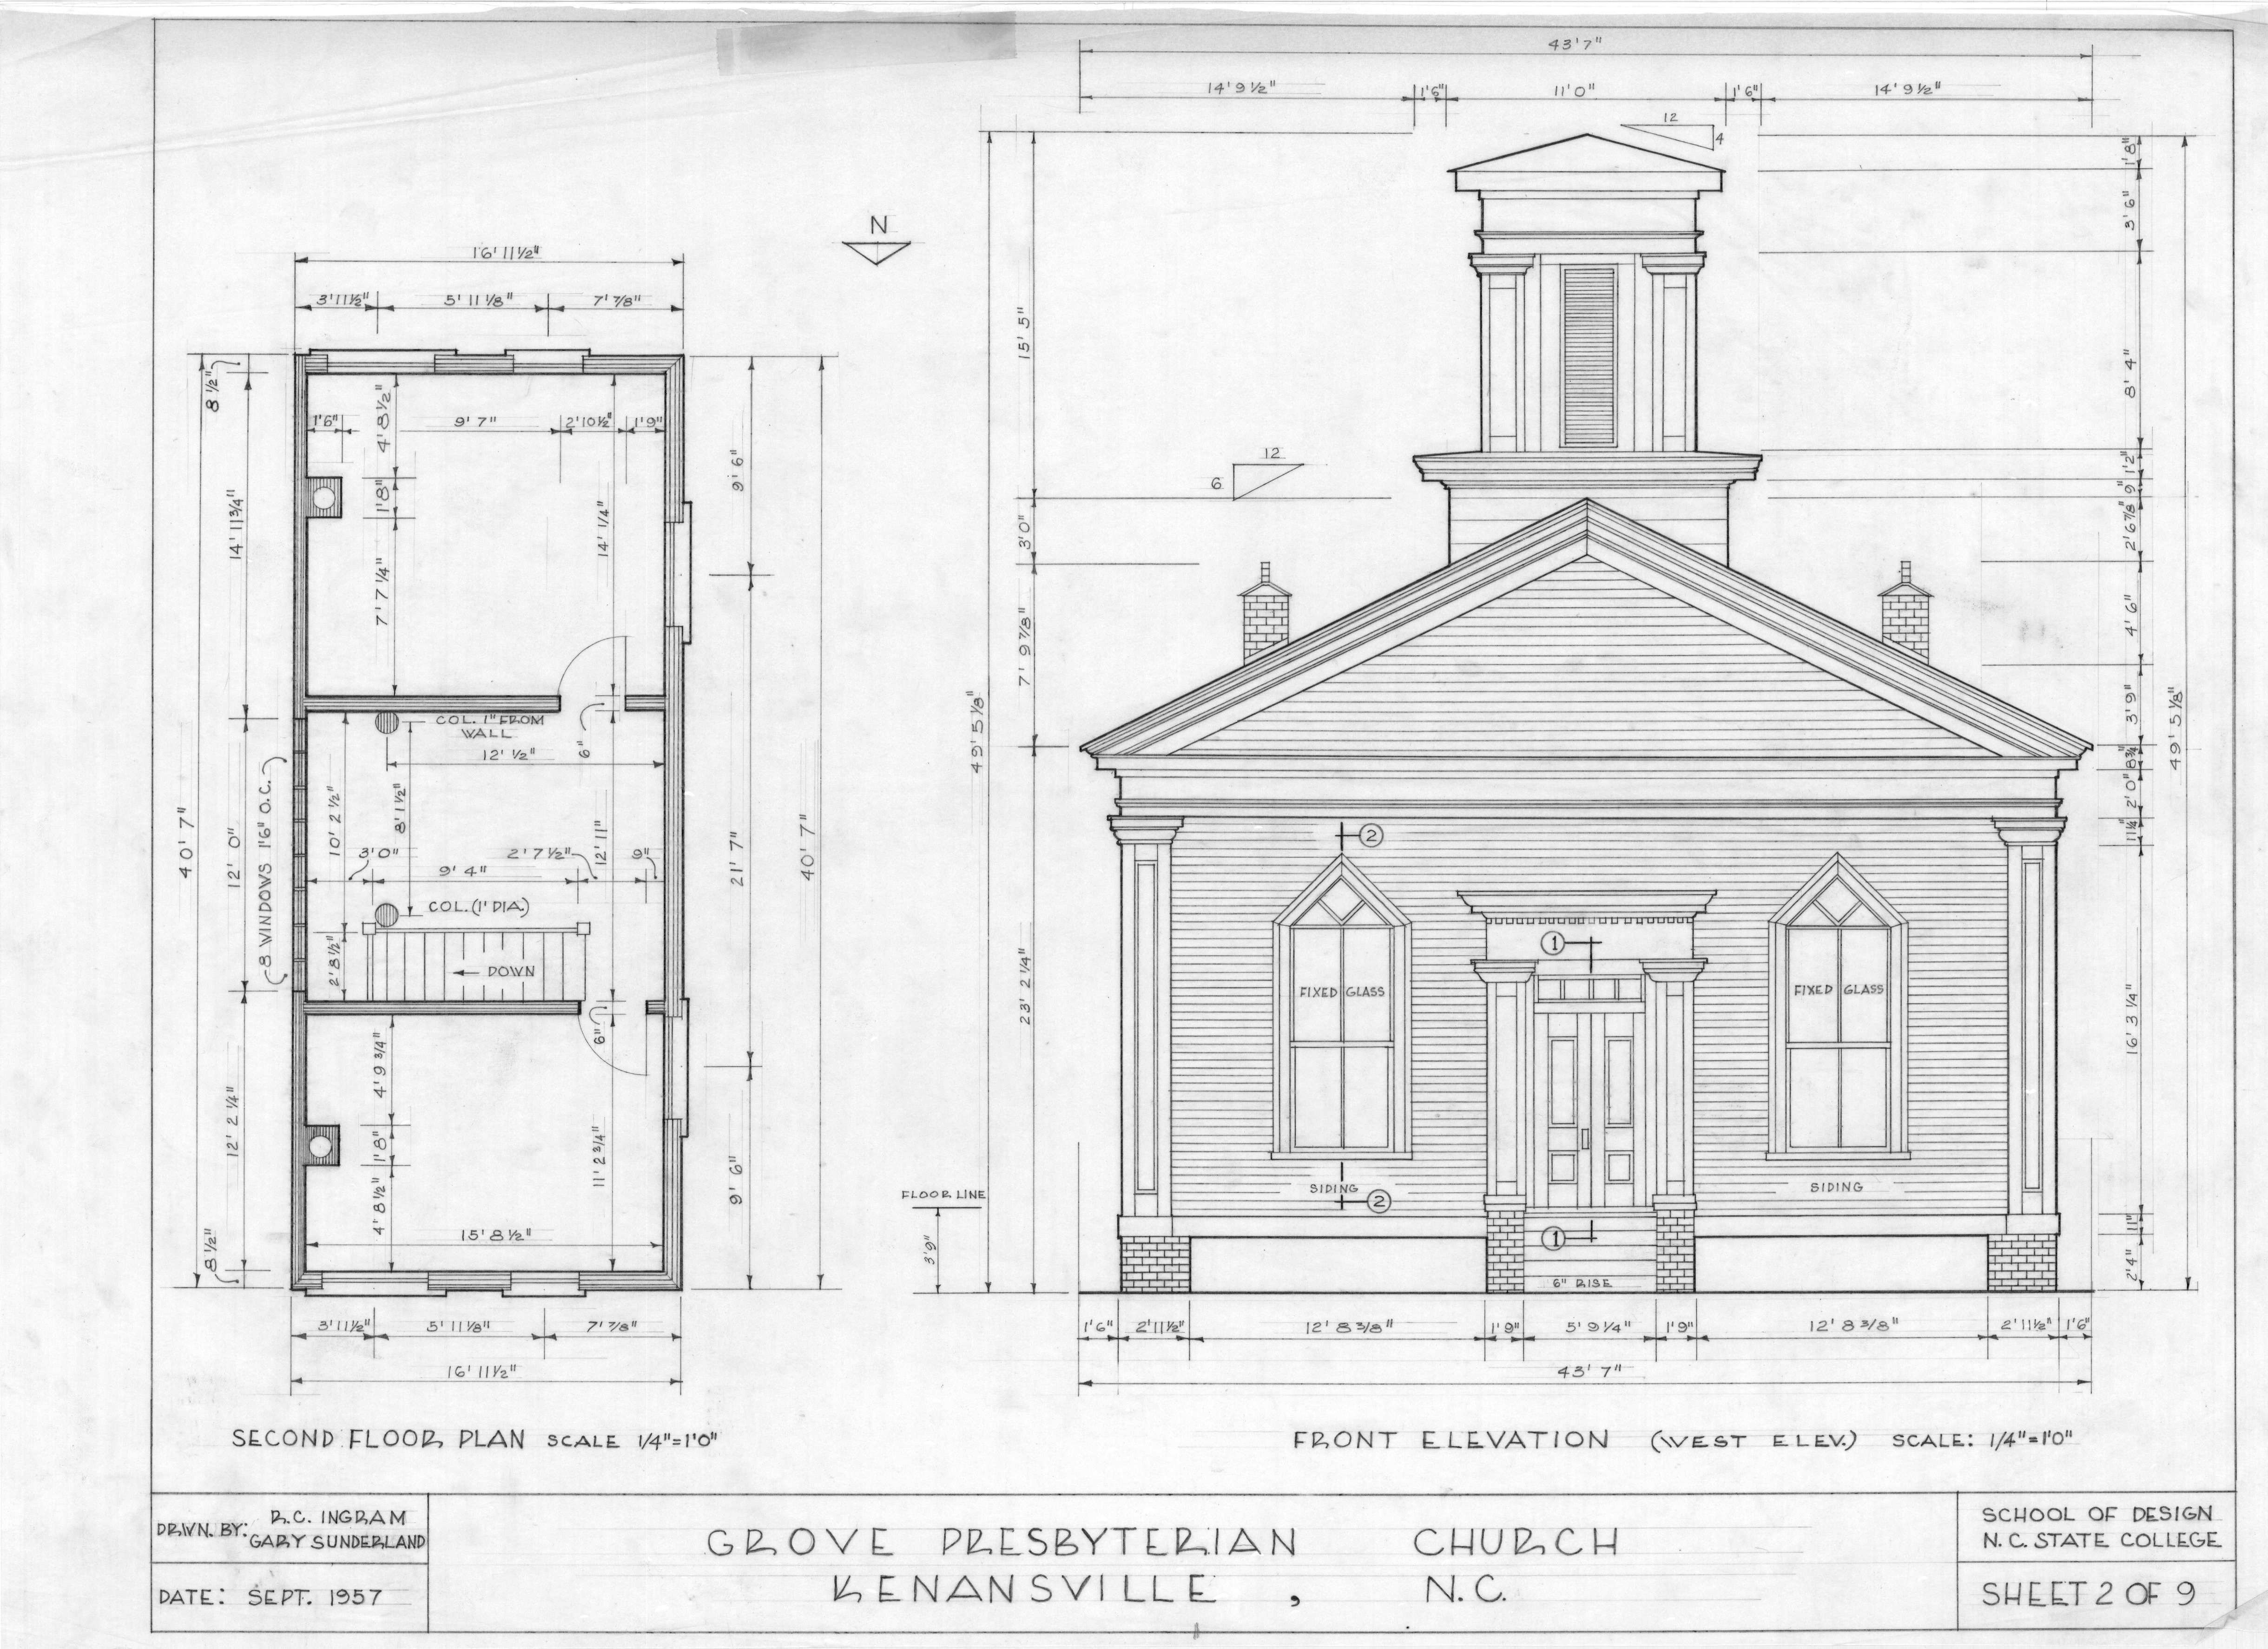 North N Home Plan And Elevation : Second floor plan and west elevation grove presbyterian